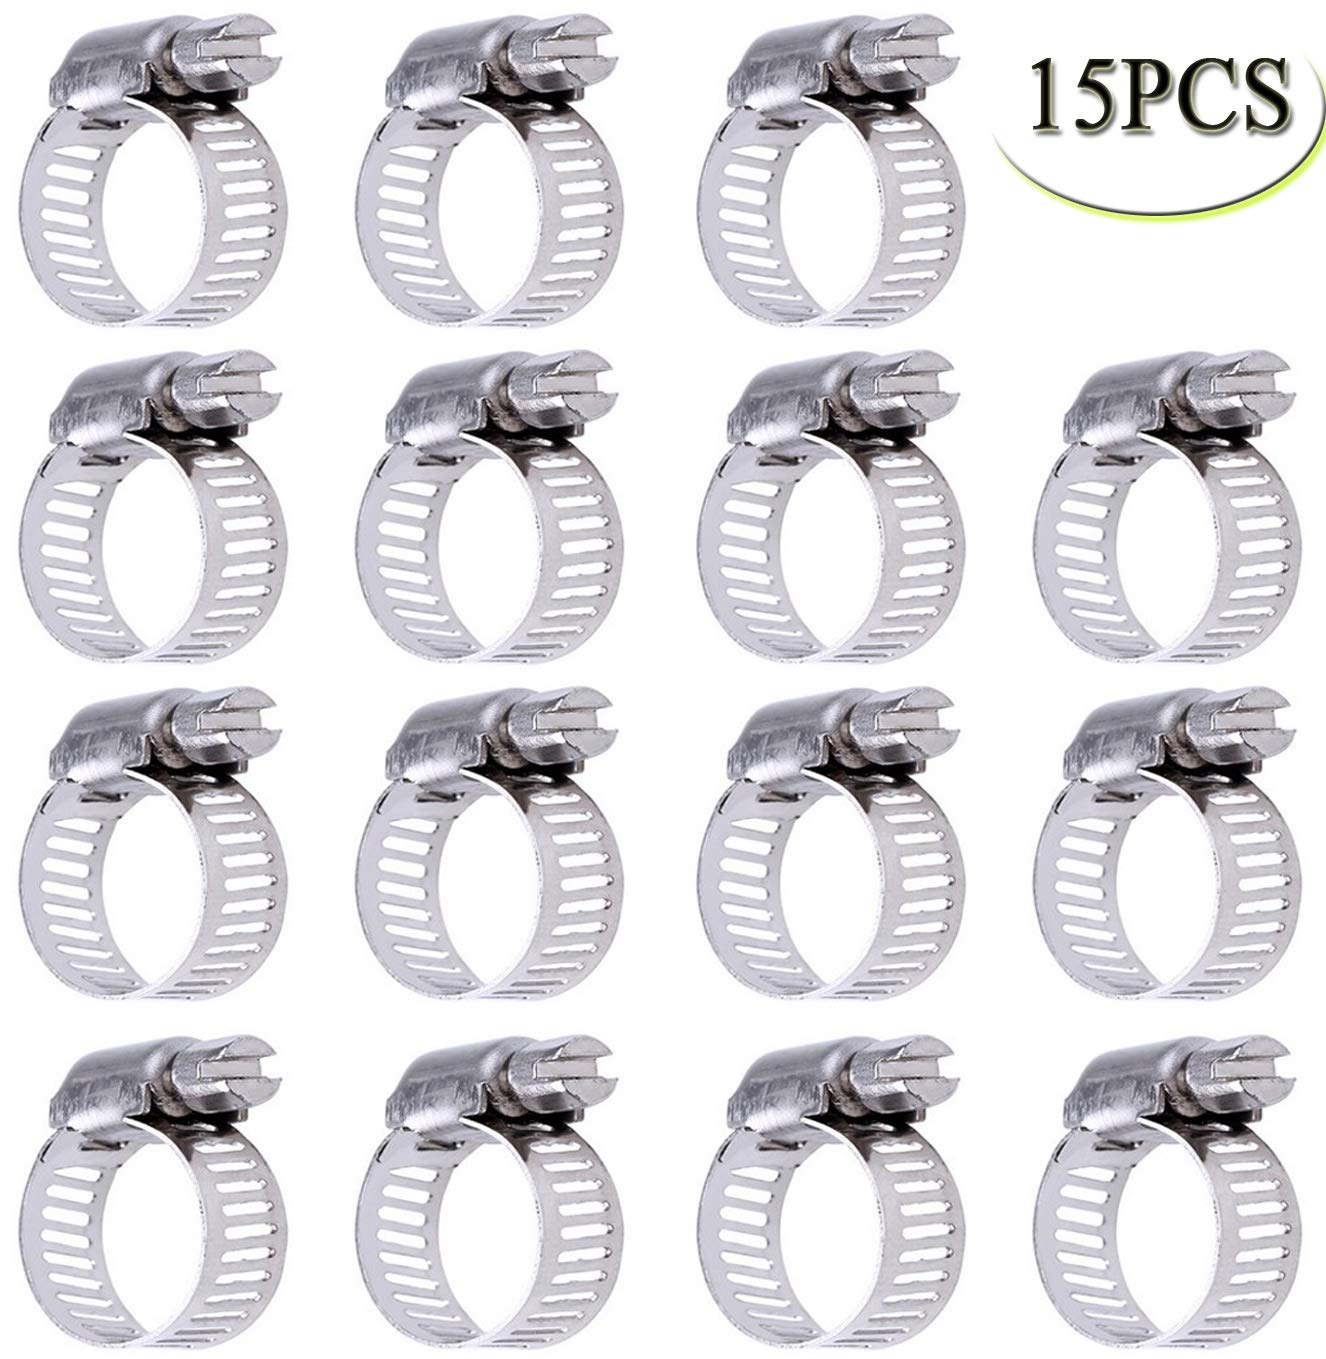 Miniature Power-Seal Worm-Drive Kit 19 to 29 Pack of 15 Stainless Steel Hose Clamp for Worm Drive Gear Hose Clamps